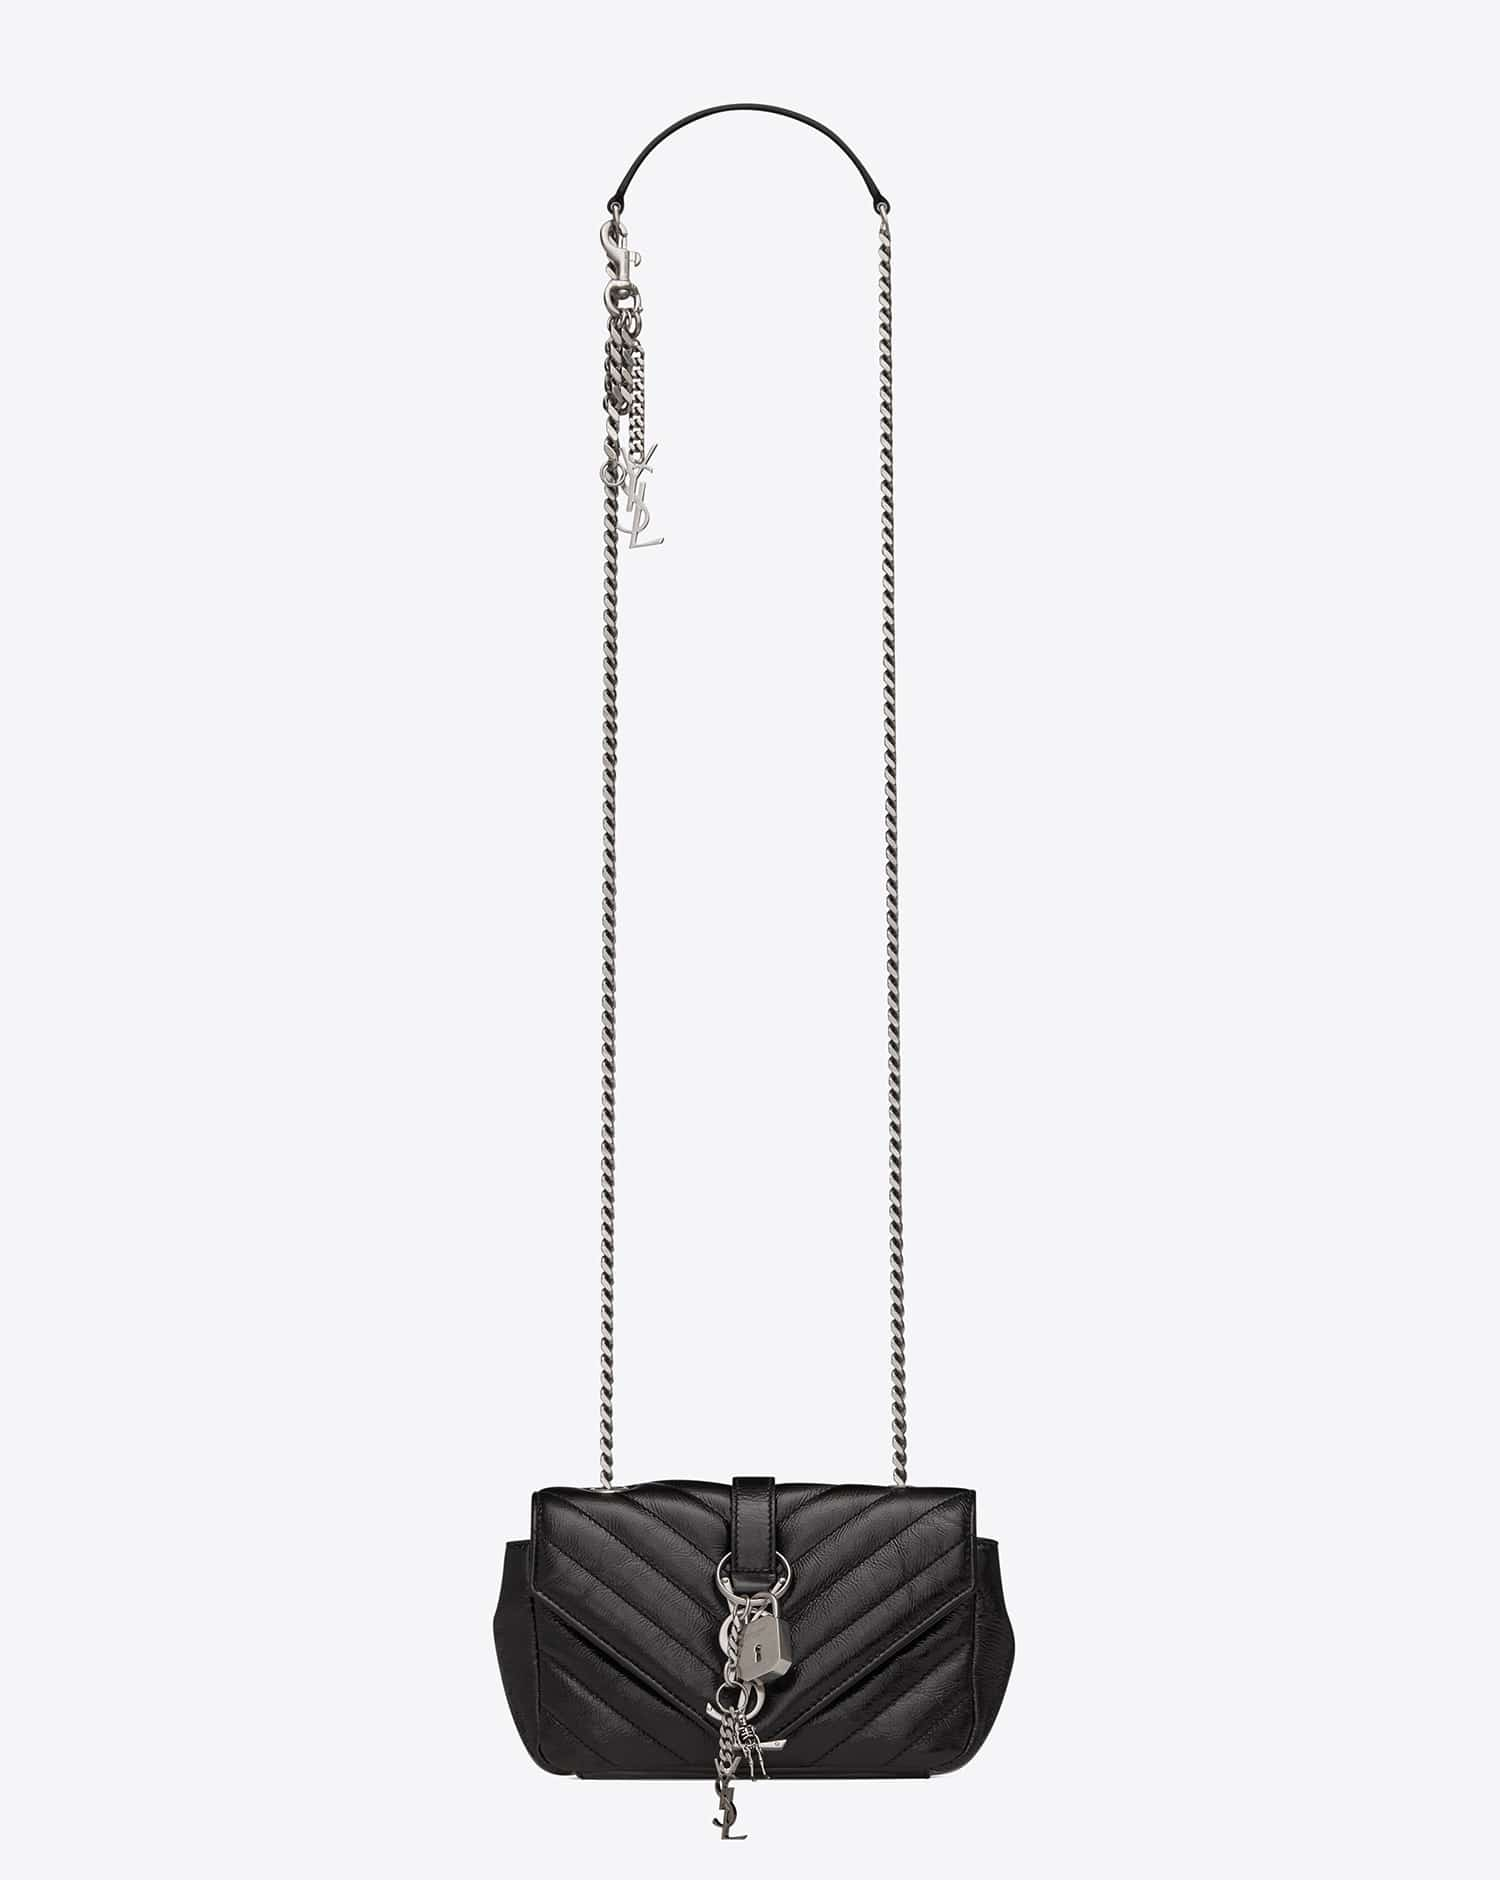 Saint Laurent Fall Winter 2015 Bag Collection Featuring Punk Chain ... 6080622d91b98